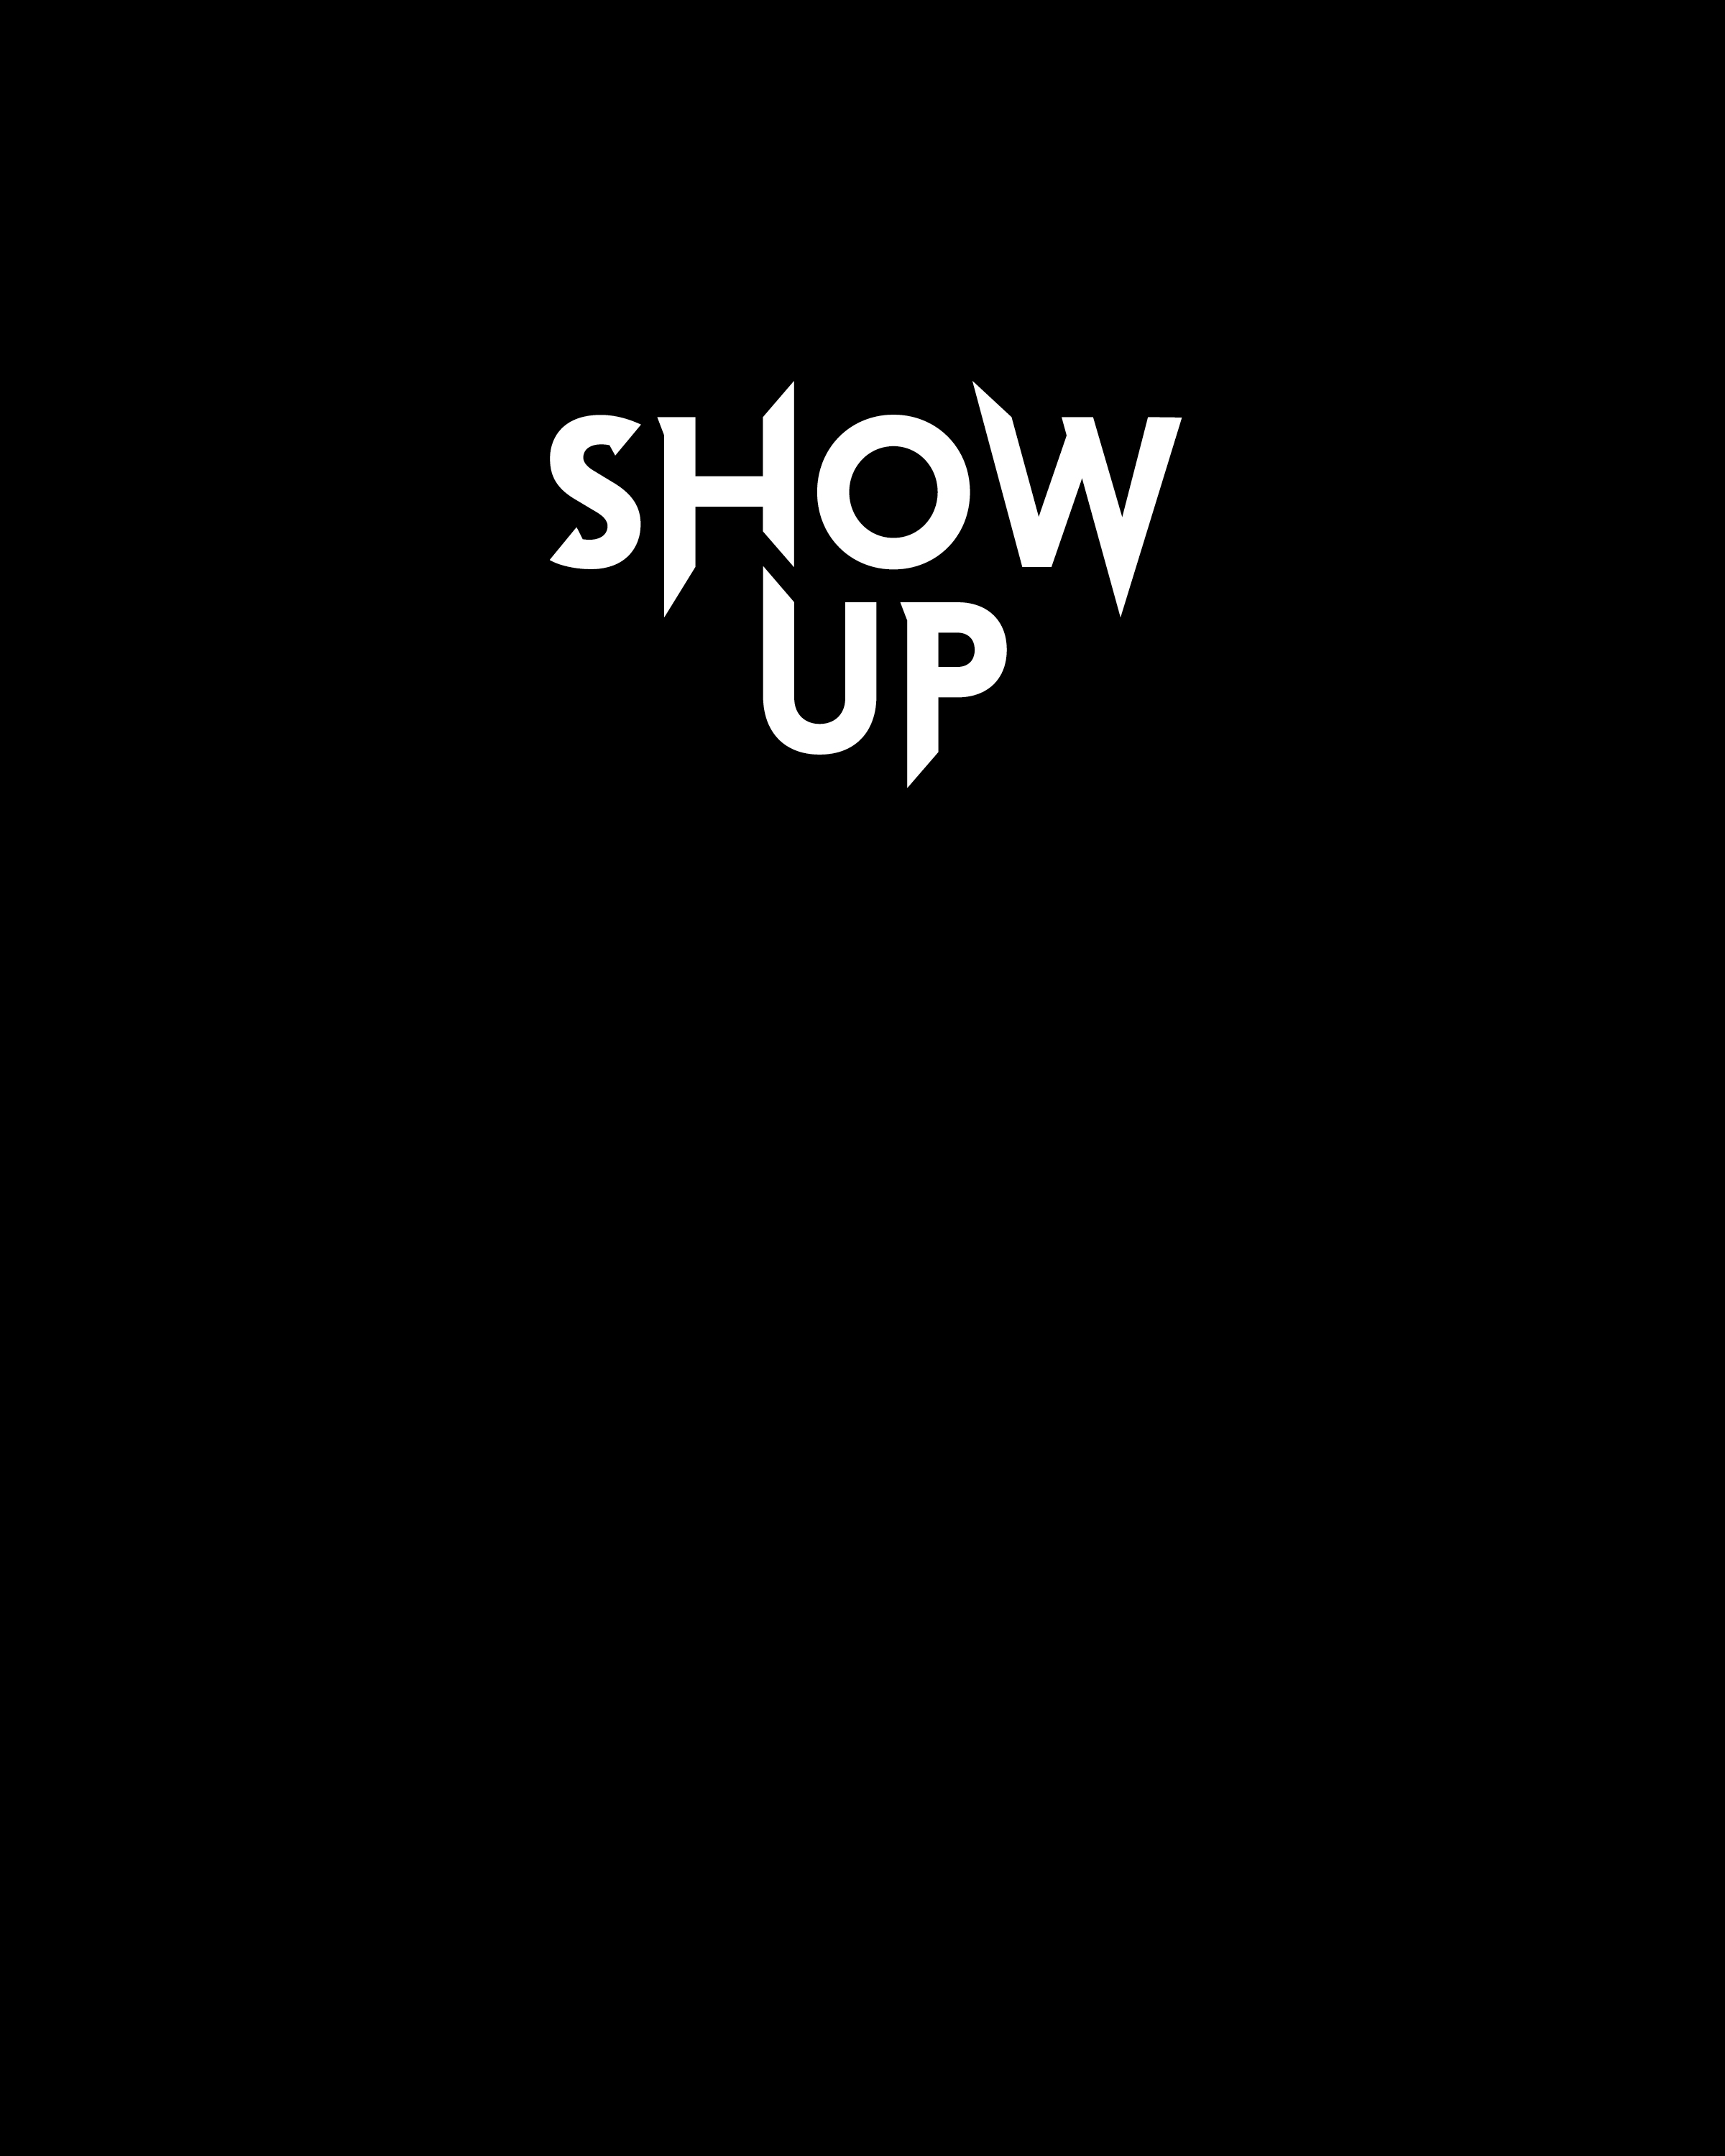 ShowUp_Logo.jpg